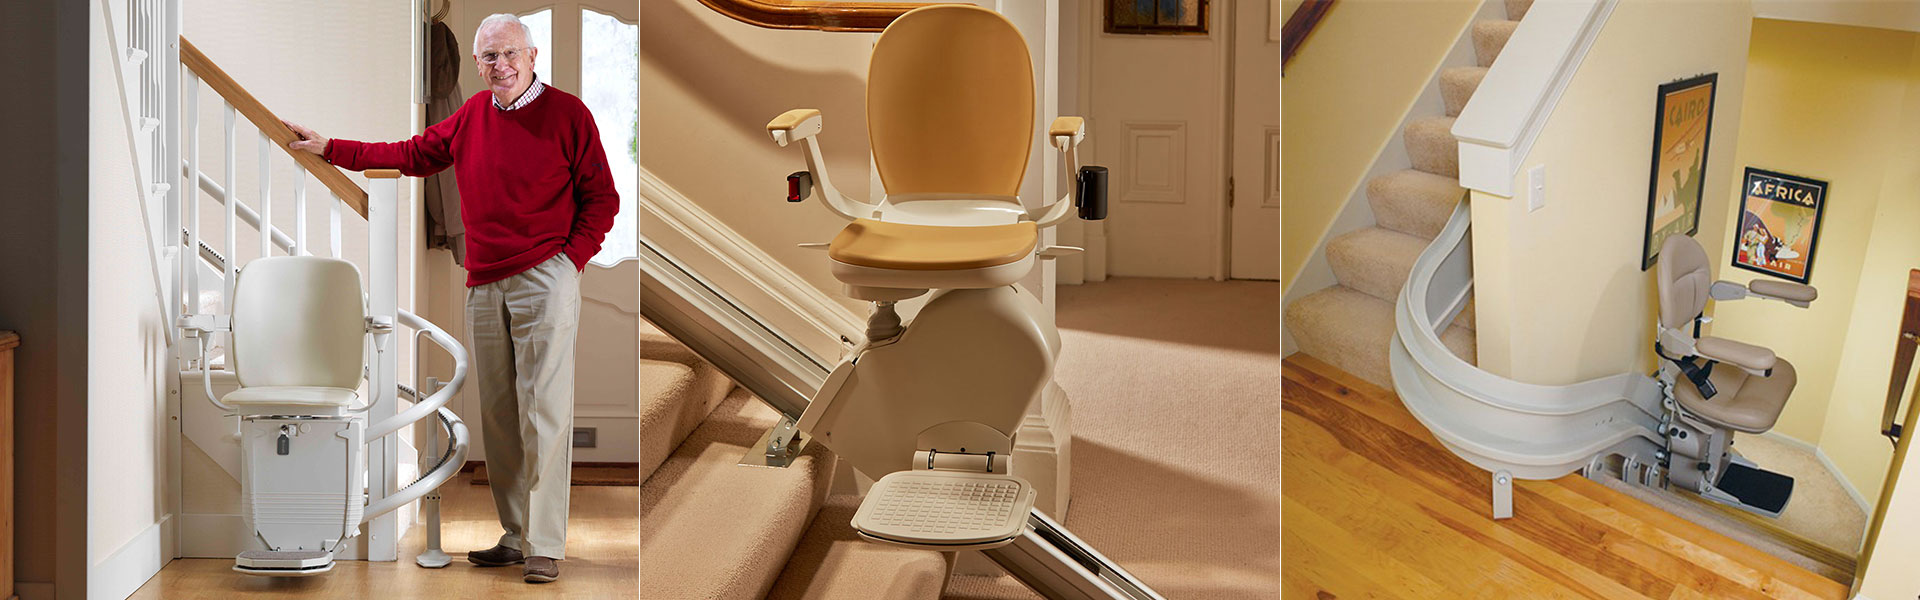 acorn bruno u0026 stannah stairlifts chairlifts for stairs used stair lifts chairlift u0026 stairlift rental and repair in wilmington de from interstate lift